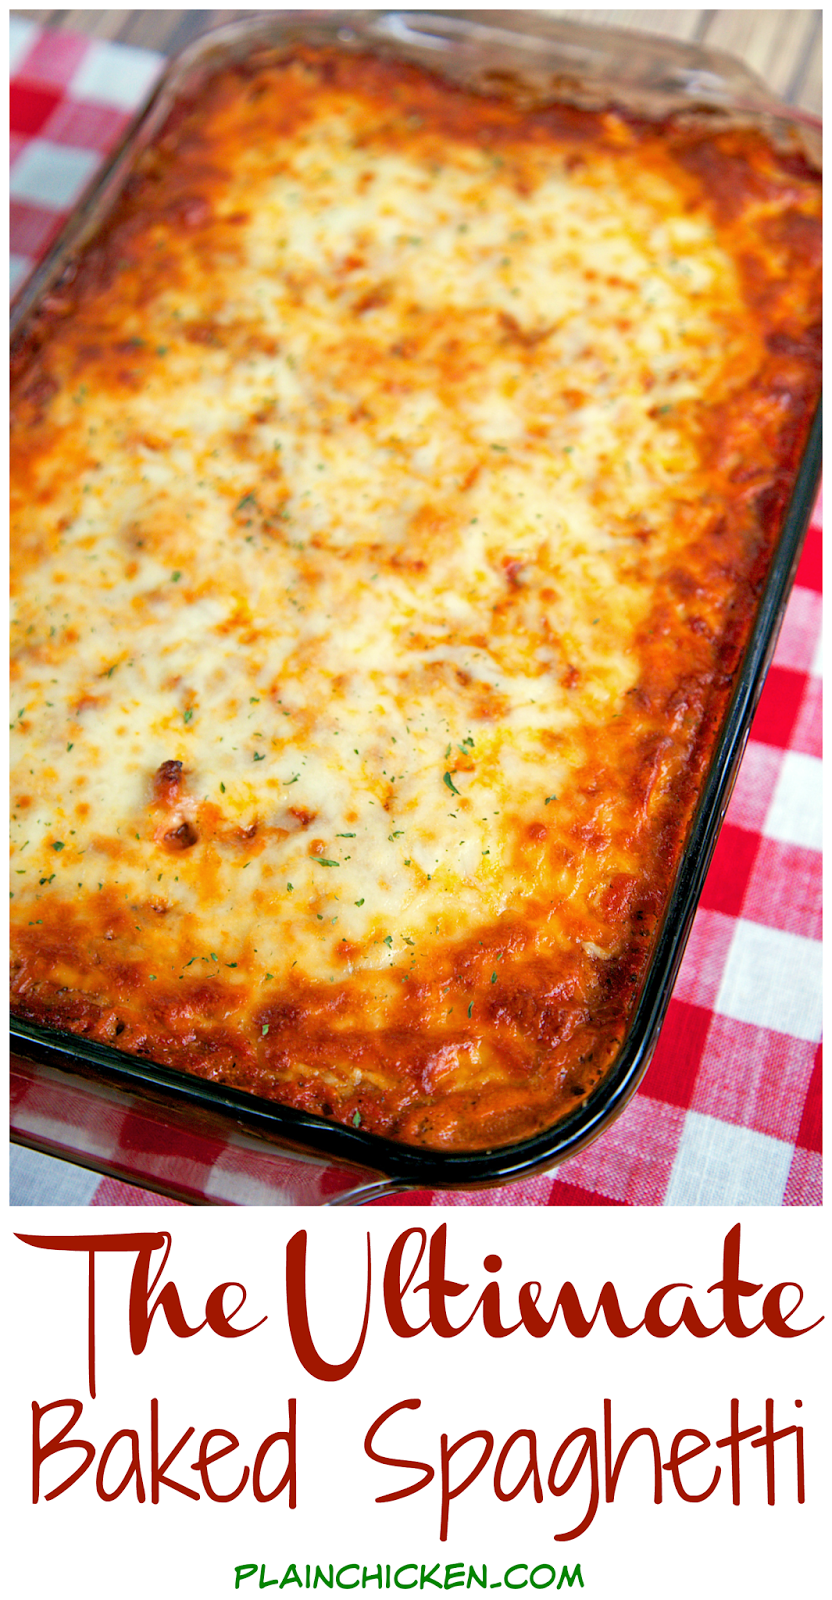 The Ultimate Baked Spaghetti Plain Chicken